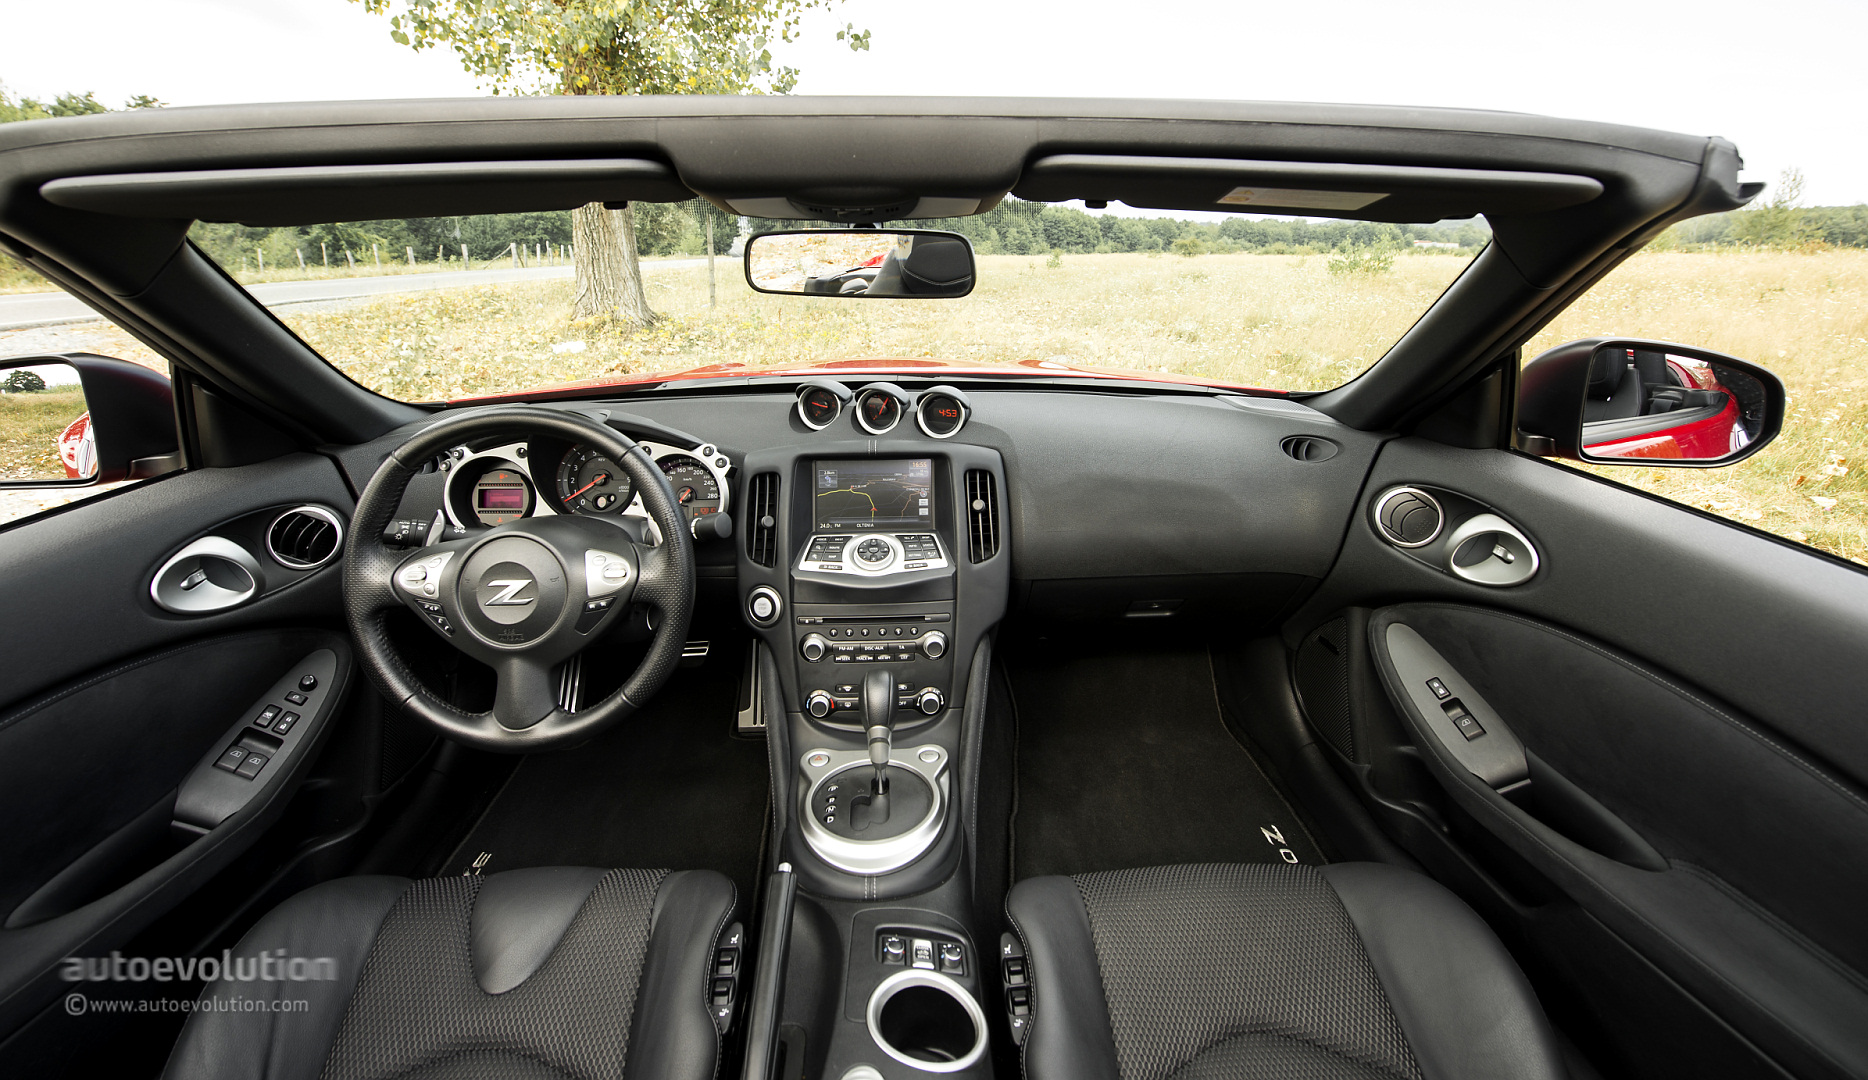 nissan 370z interior 2014 images galleries with a bite. Black Bedroom Furniture Sets. Home Design Ideas